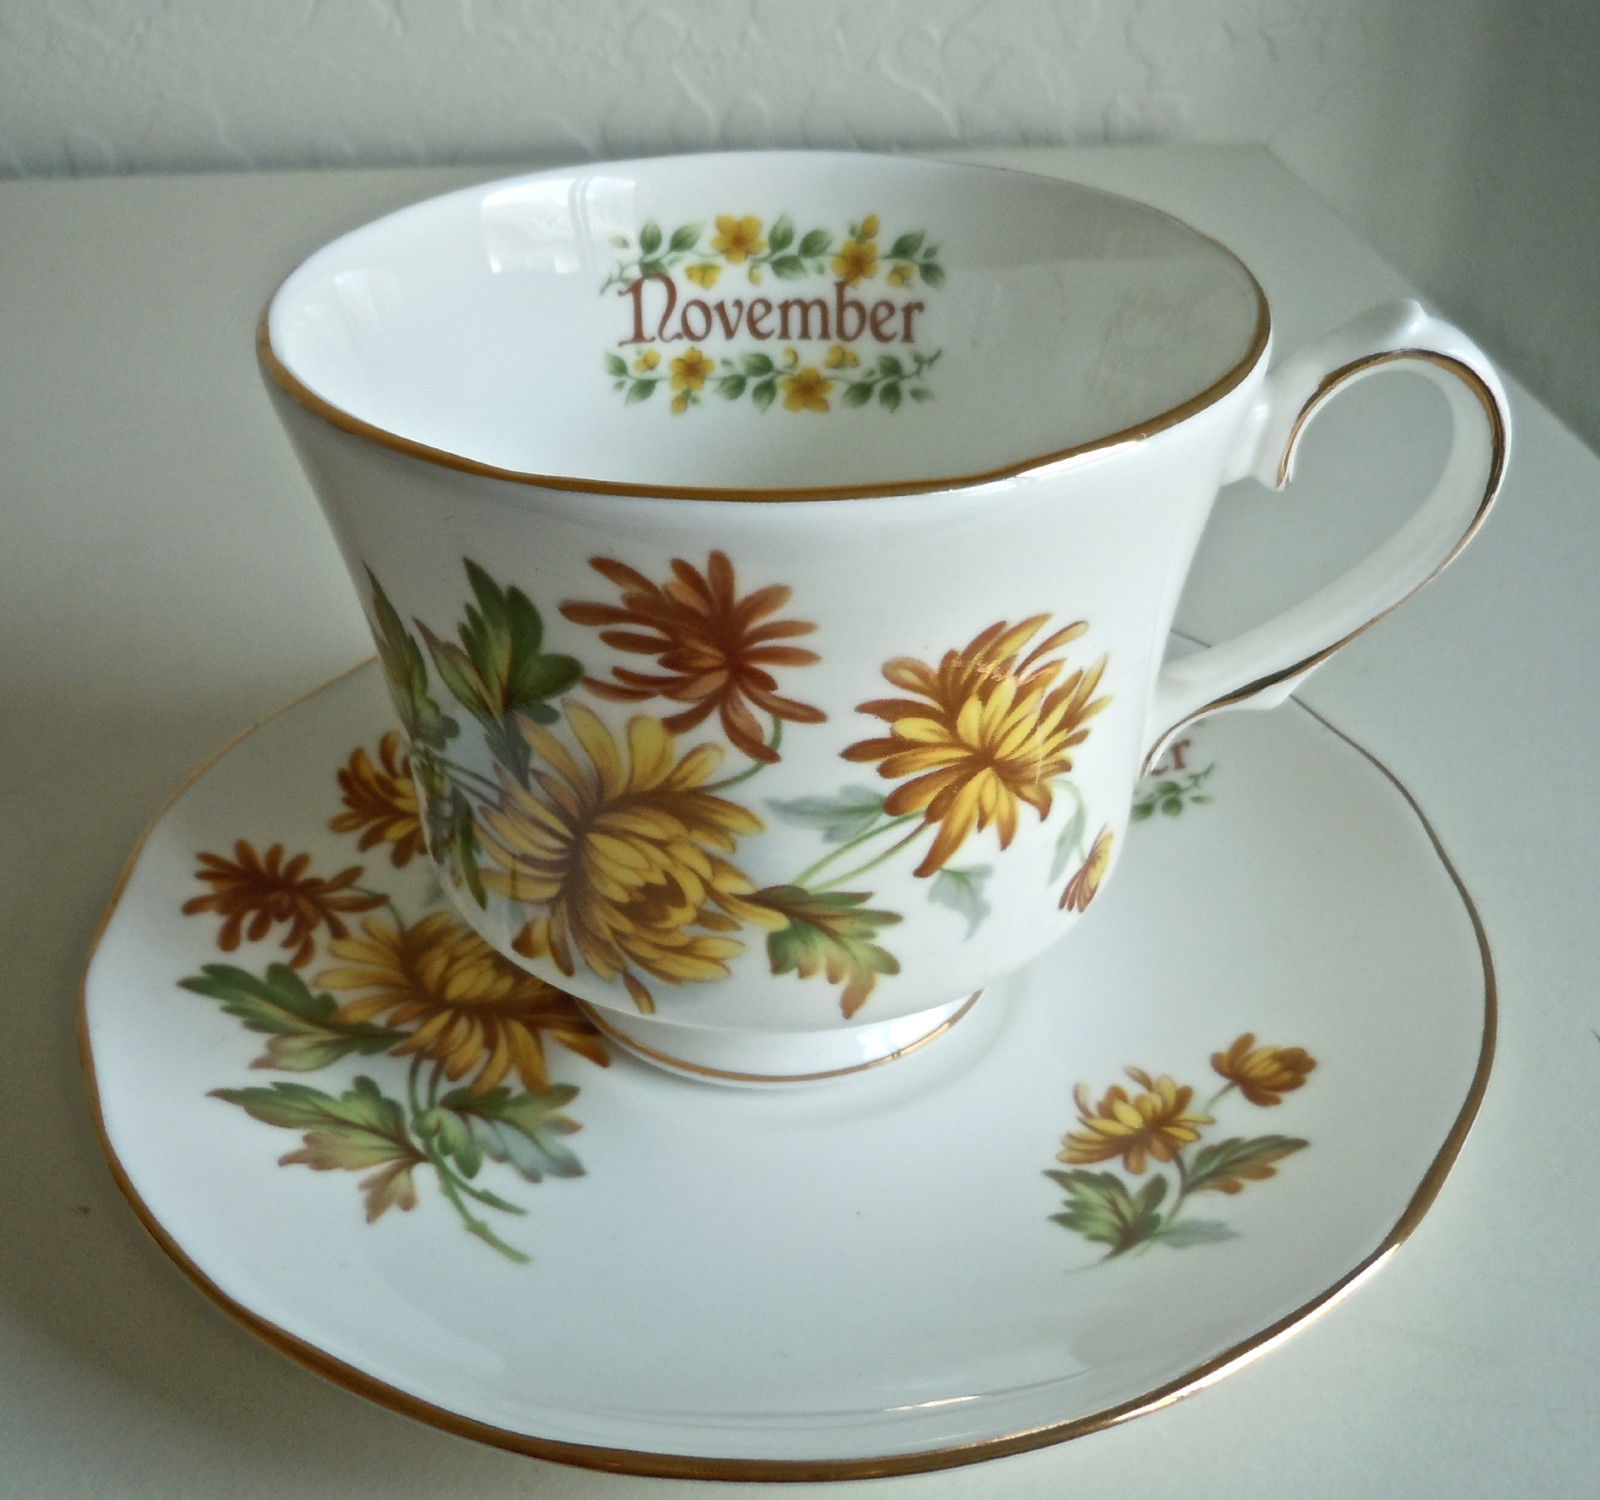 Primary image for Duchess Flower of The Month November Cup and Saucer Set